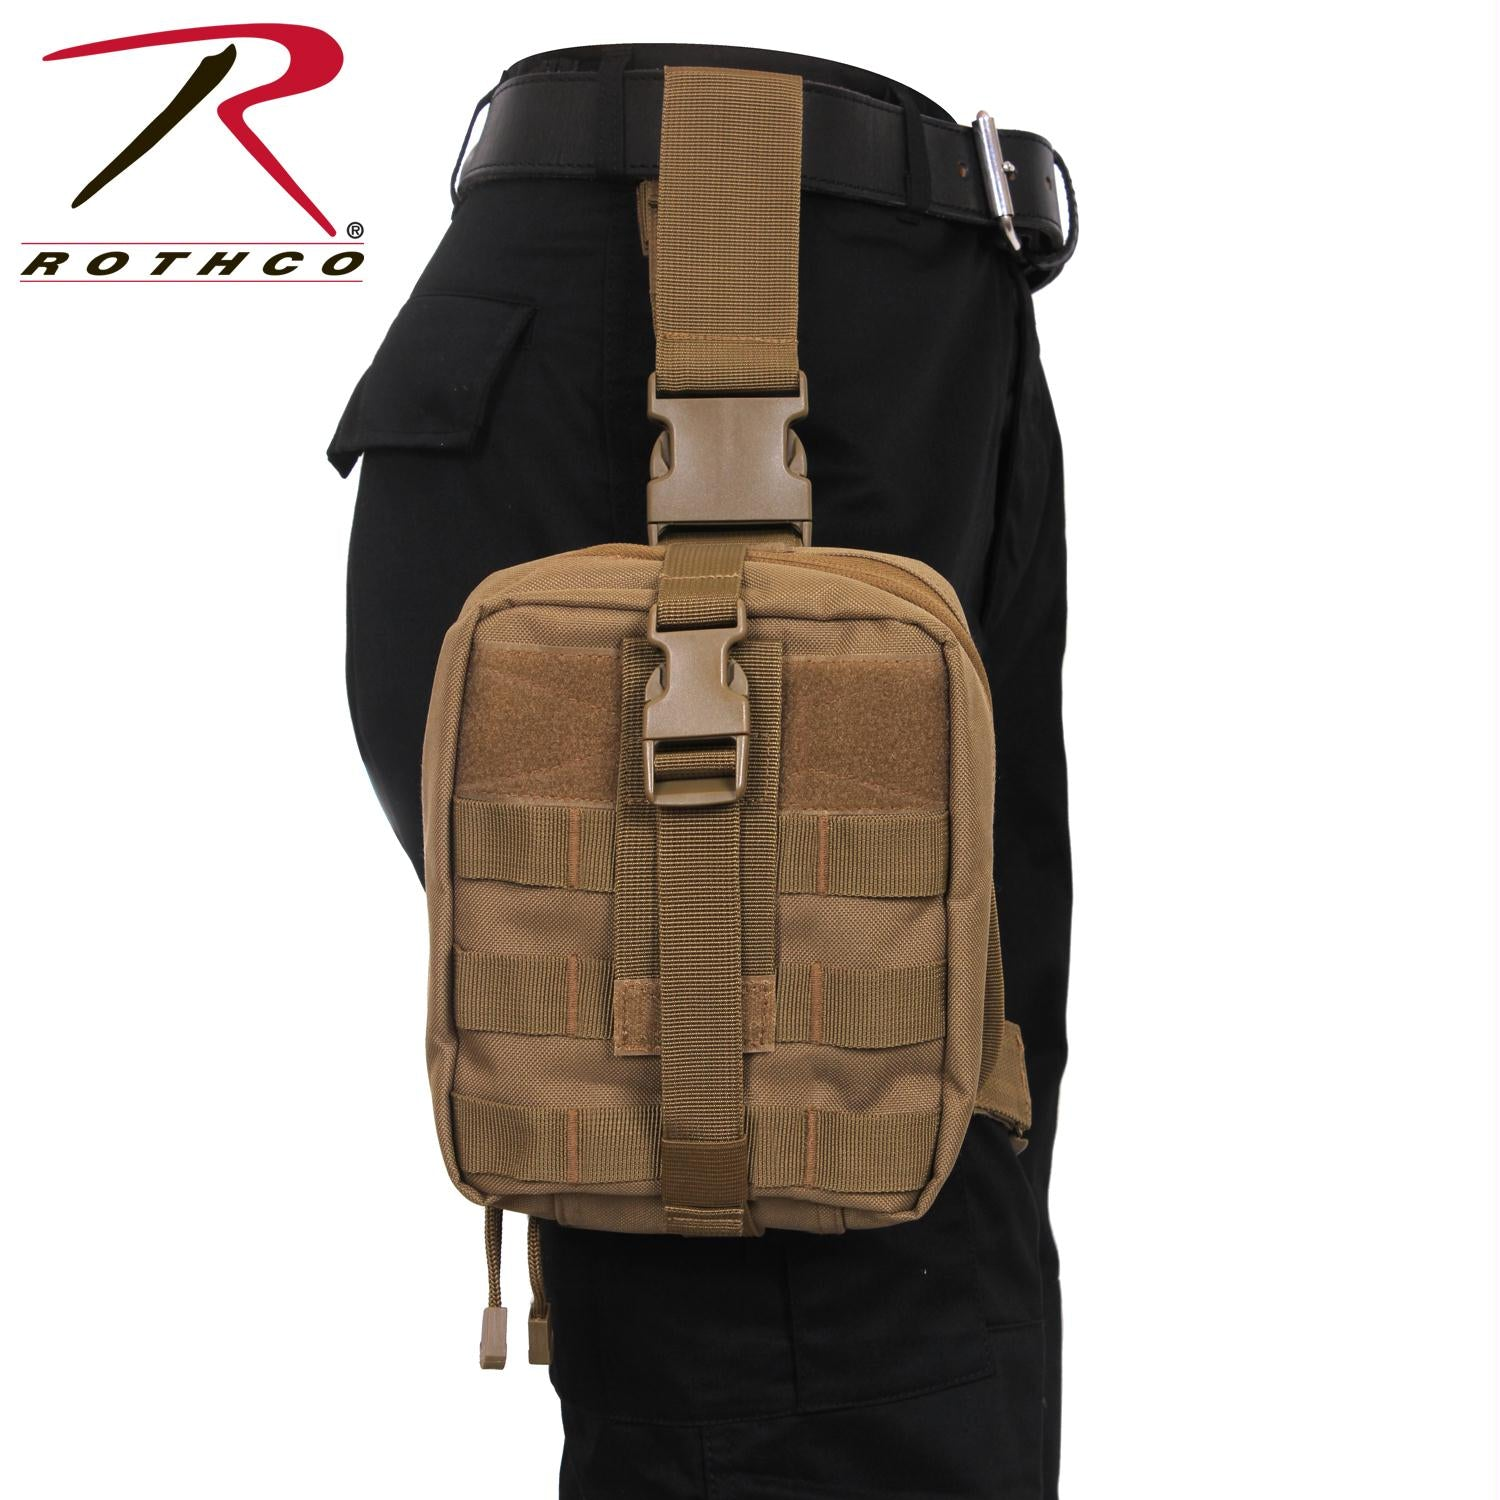 Rothco Drop Leg Medical Pouch - Coyote Brown